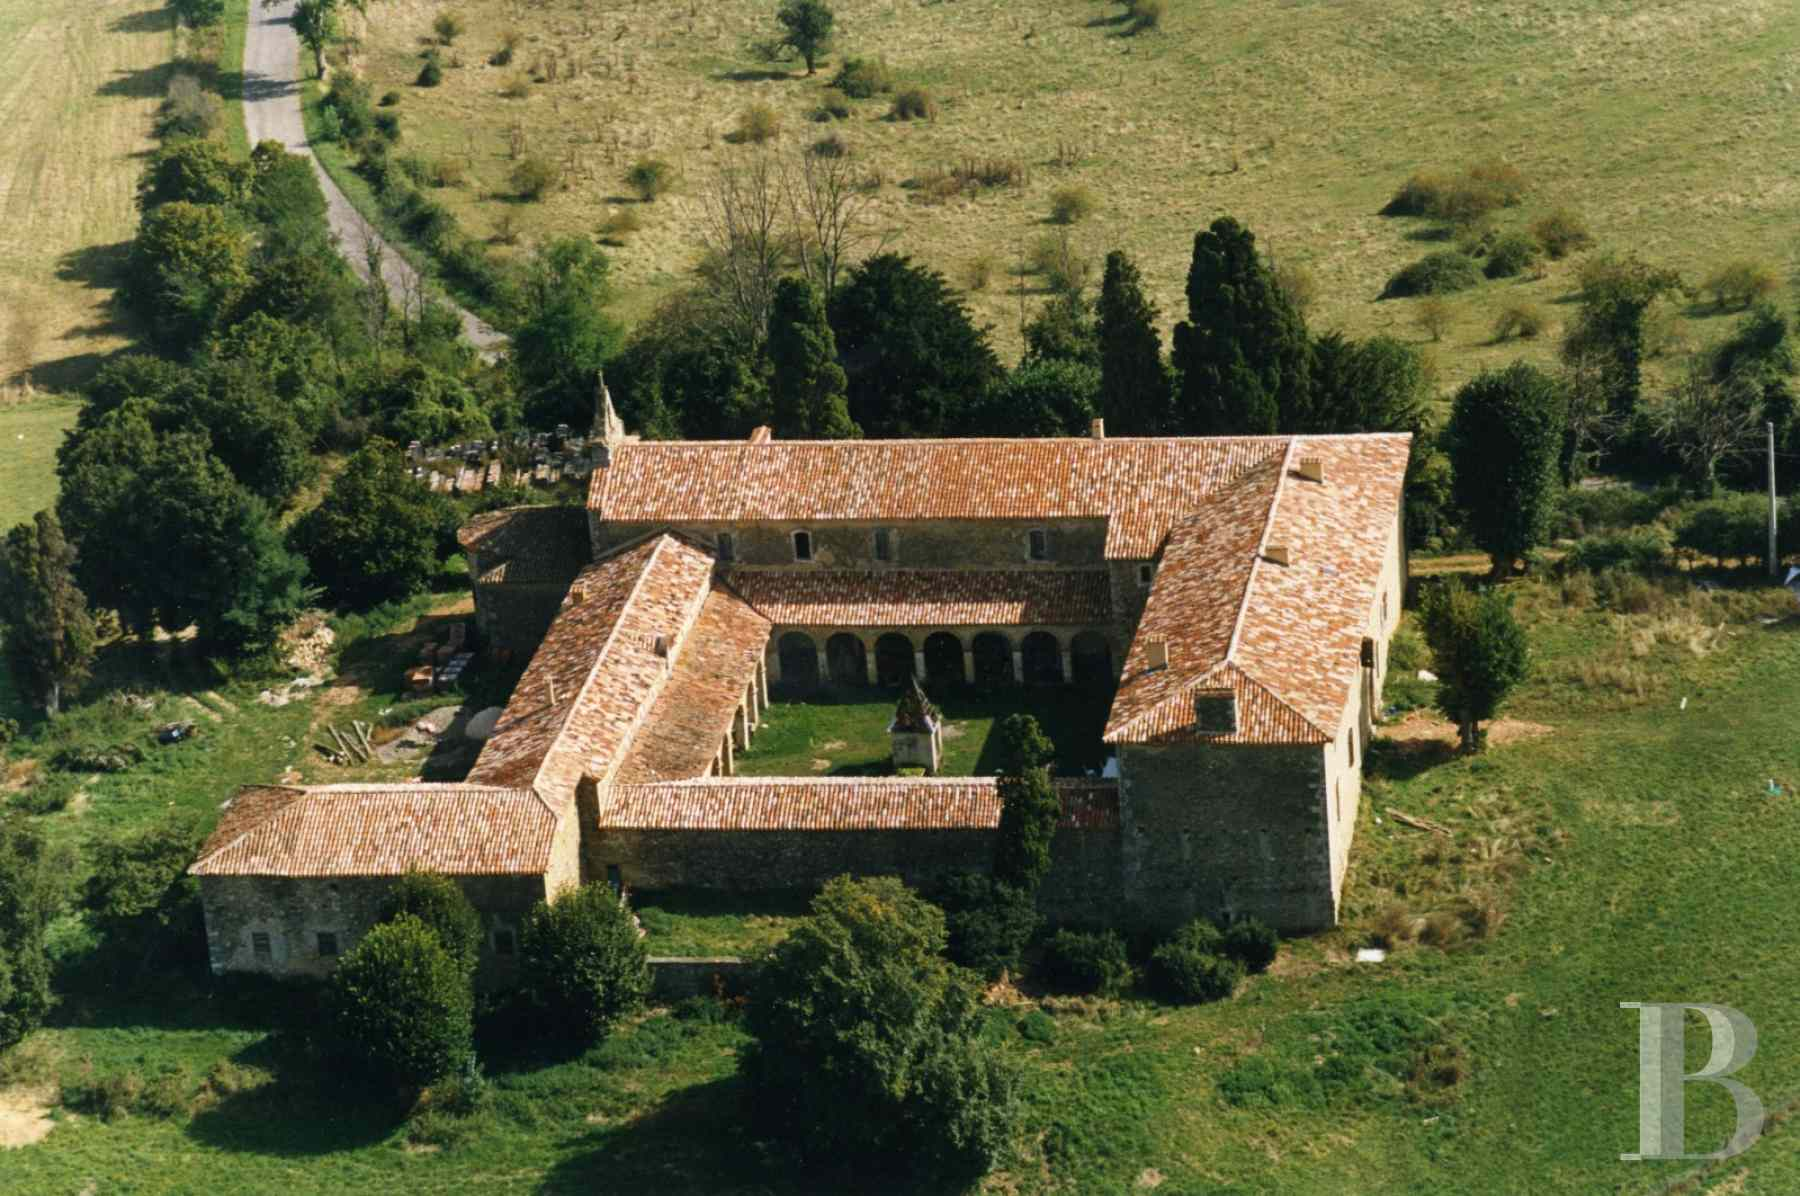 property for sale France midi pyrenees residences historic - 1 zoom